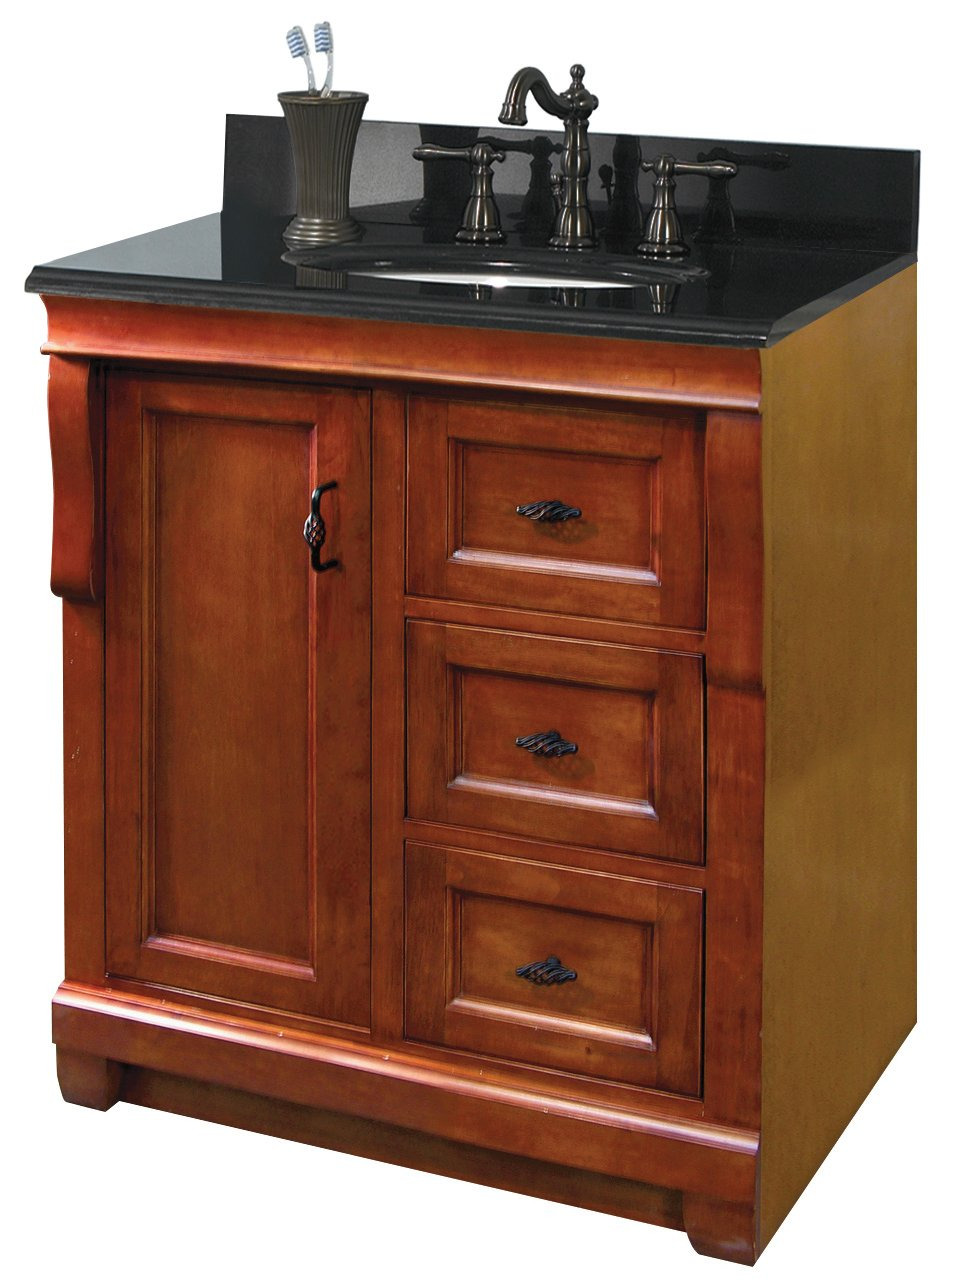 charming birch bathroom vanity cabinets. Pegasus NACA3021D Naples 30 Inch Vanity  Warm Cinnamon Bathroom Vanities Amazon com